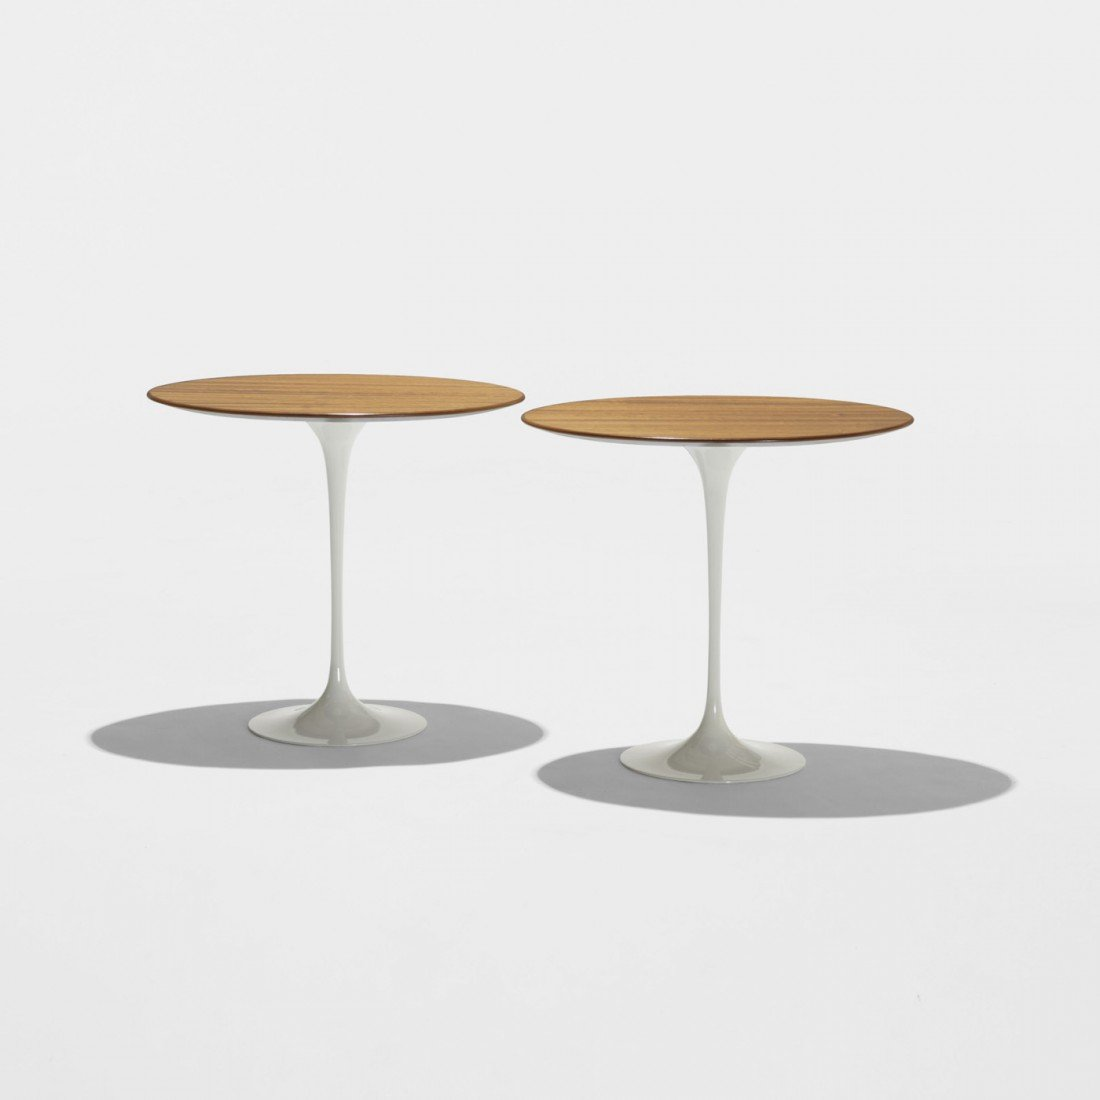 151: Eero Saarinen occasional tables, pair